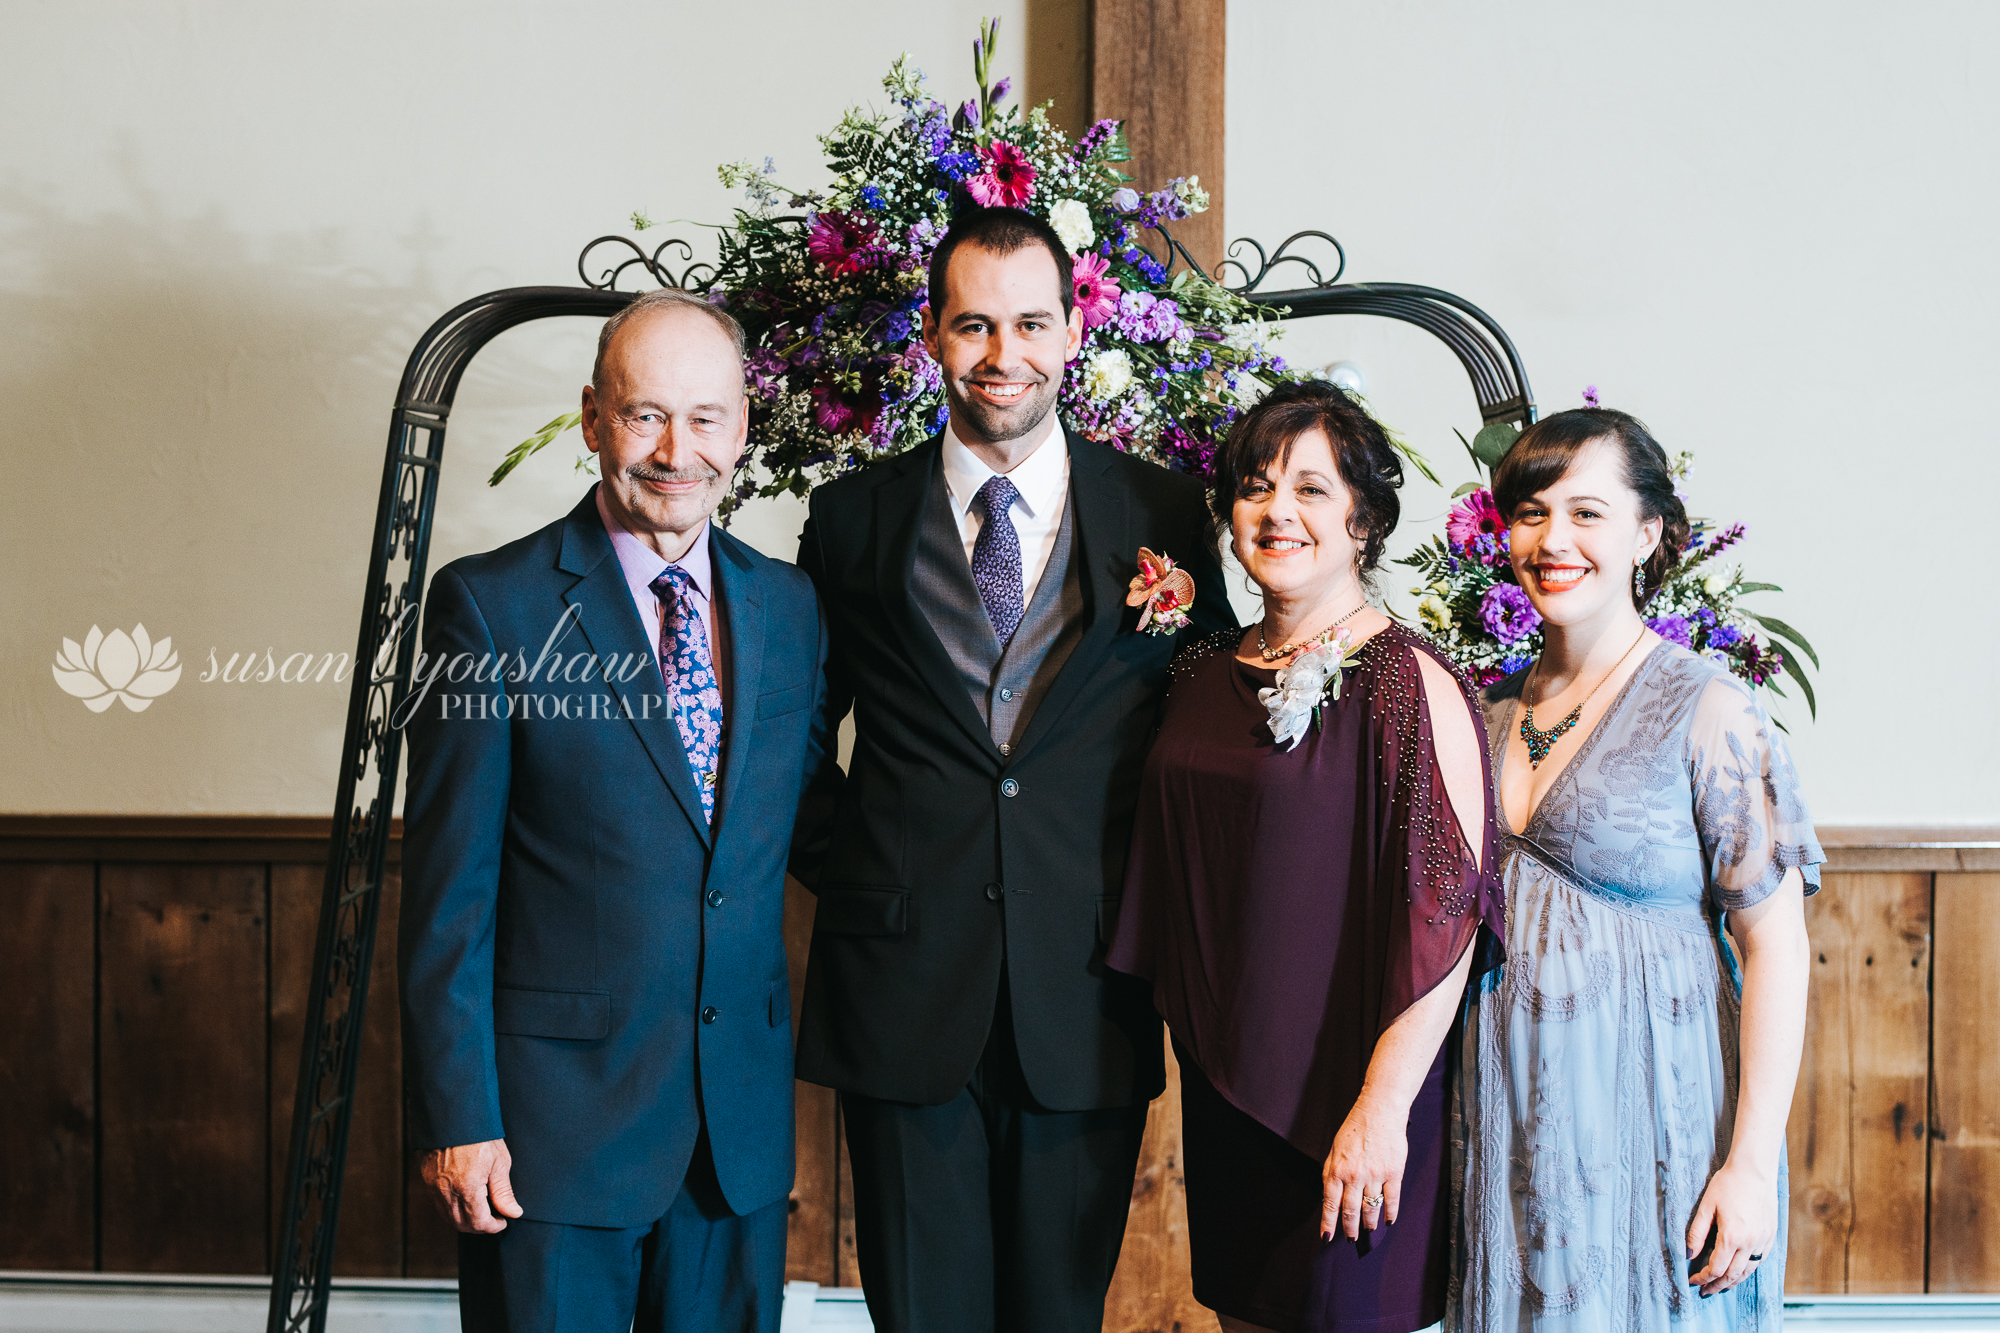 Adena and  Erik Wedding 05-17-2019 SLY Photography-58.jpg